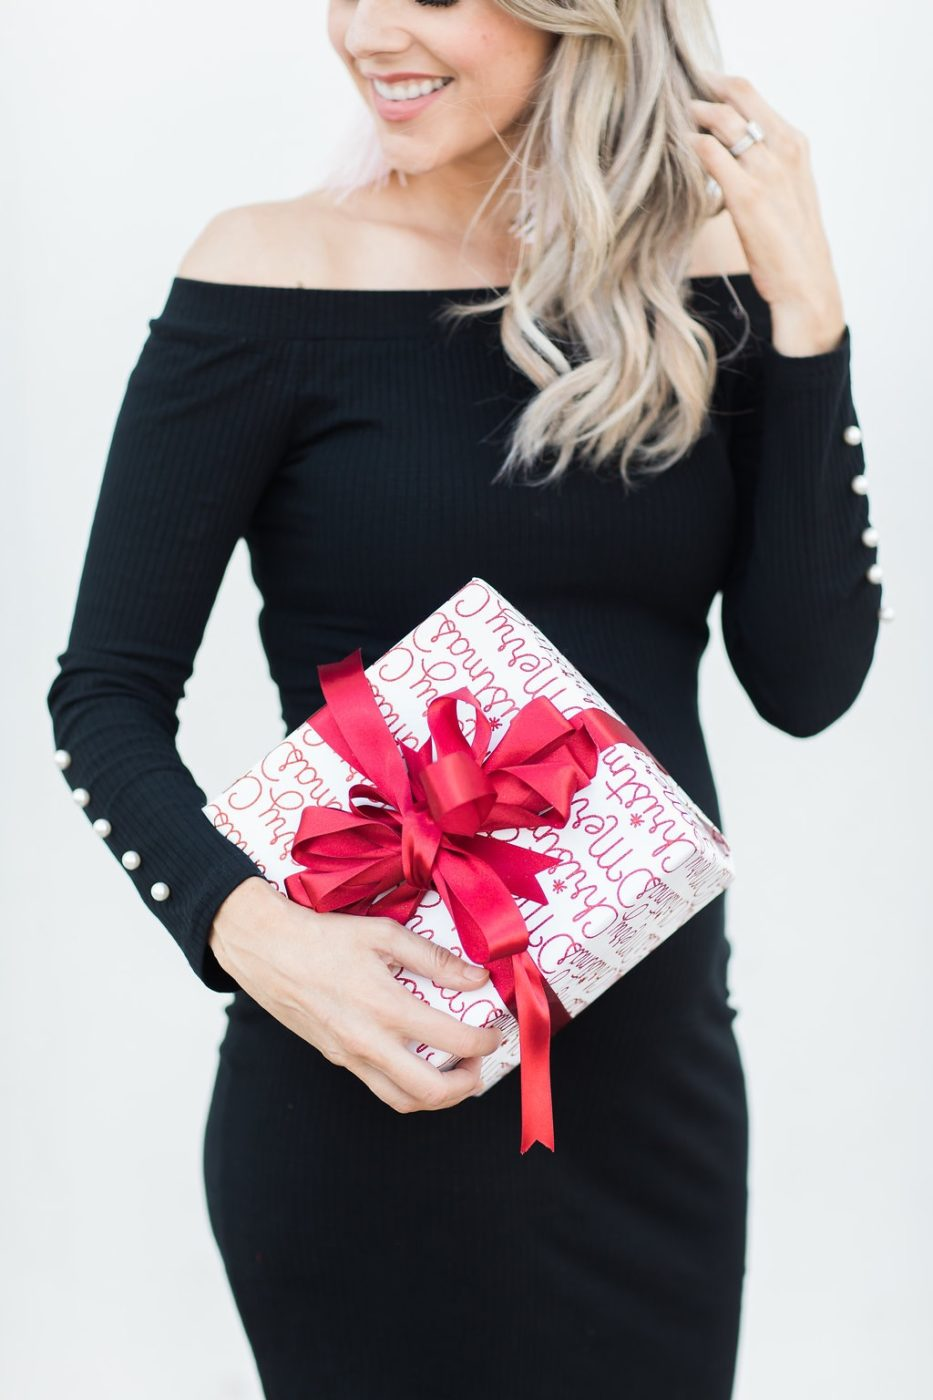 EARLY BLACK FRIDAY SALES ROUNDUP- And a $17 Holiday Party Dress